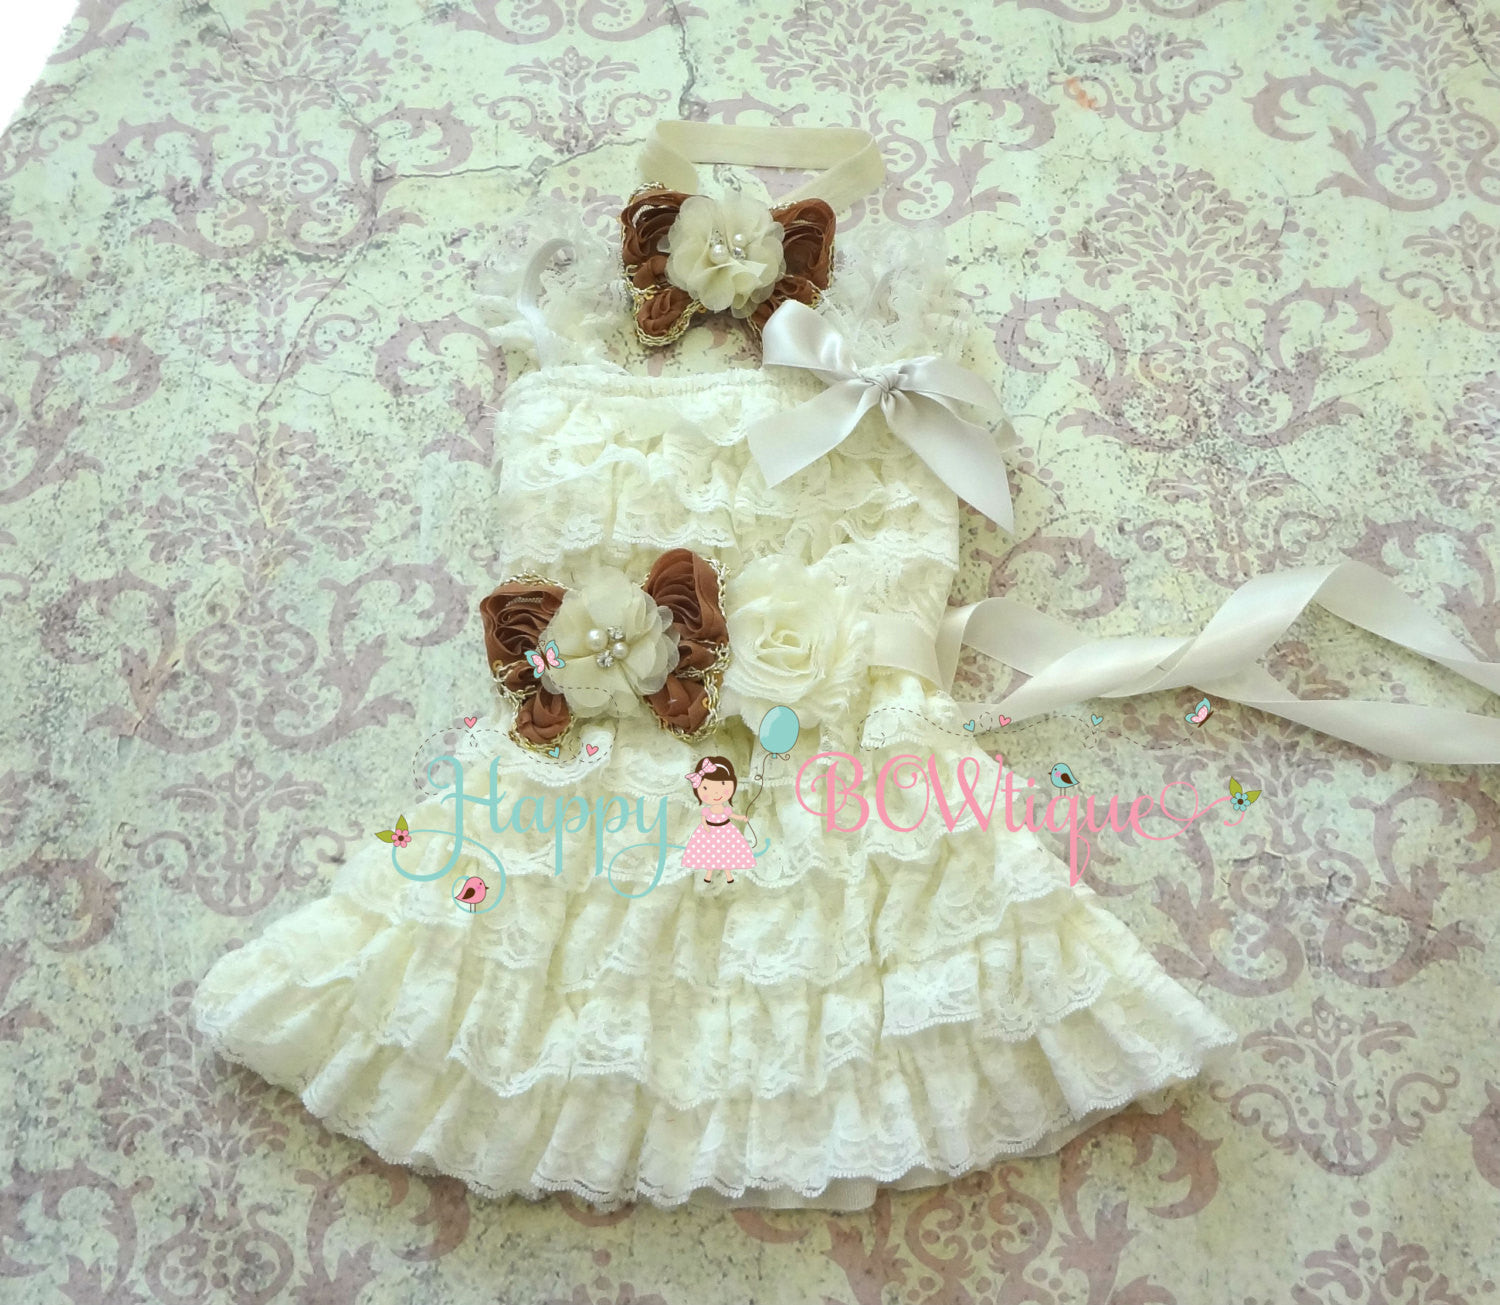 Rustic Flower girls dress/ Champagne Butterfly Girl's Lace Dress set - Happy BOWtique - children's clothing, Baby Girl clothing